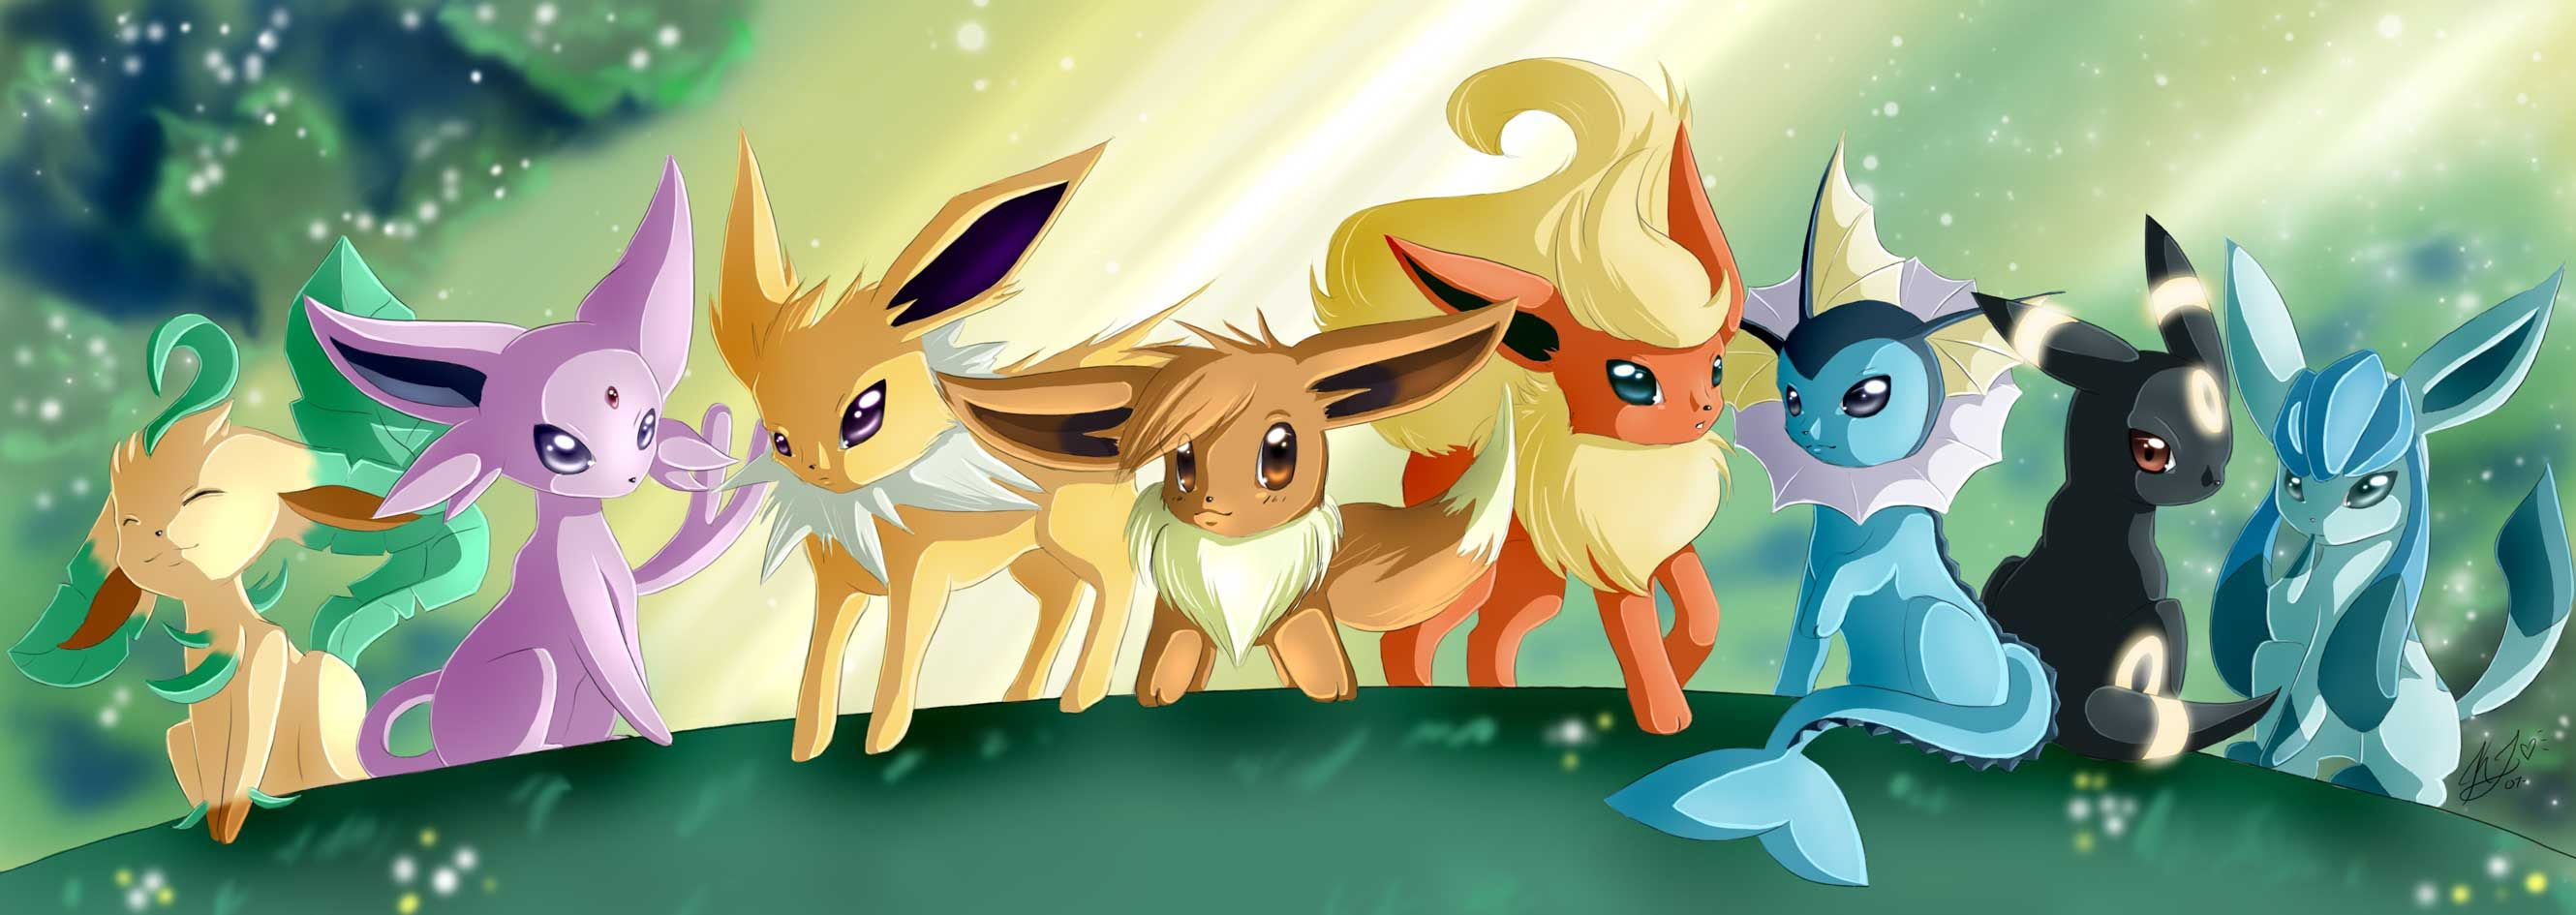 Simple Wallpaper Halloween Eevee - f9dcbddf3c0159dd4059603e75eaa2e9  Graphic_299981.jpg